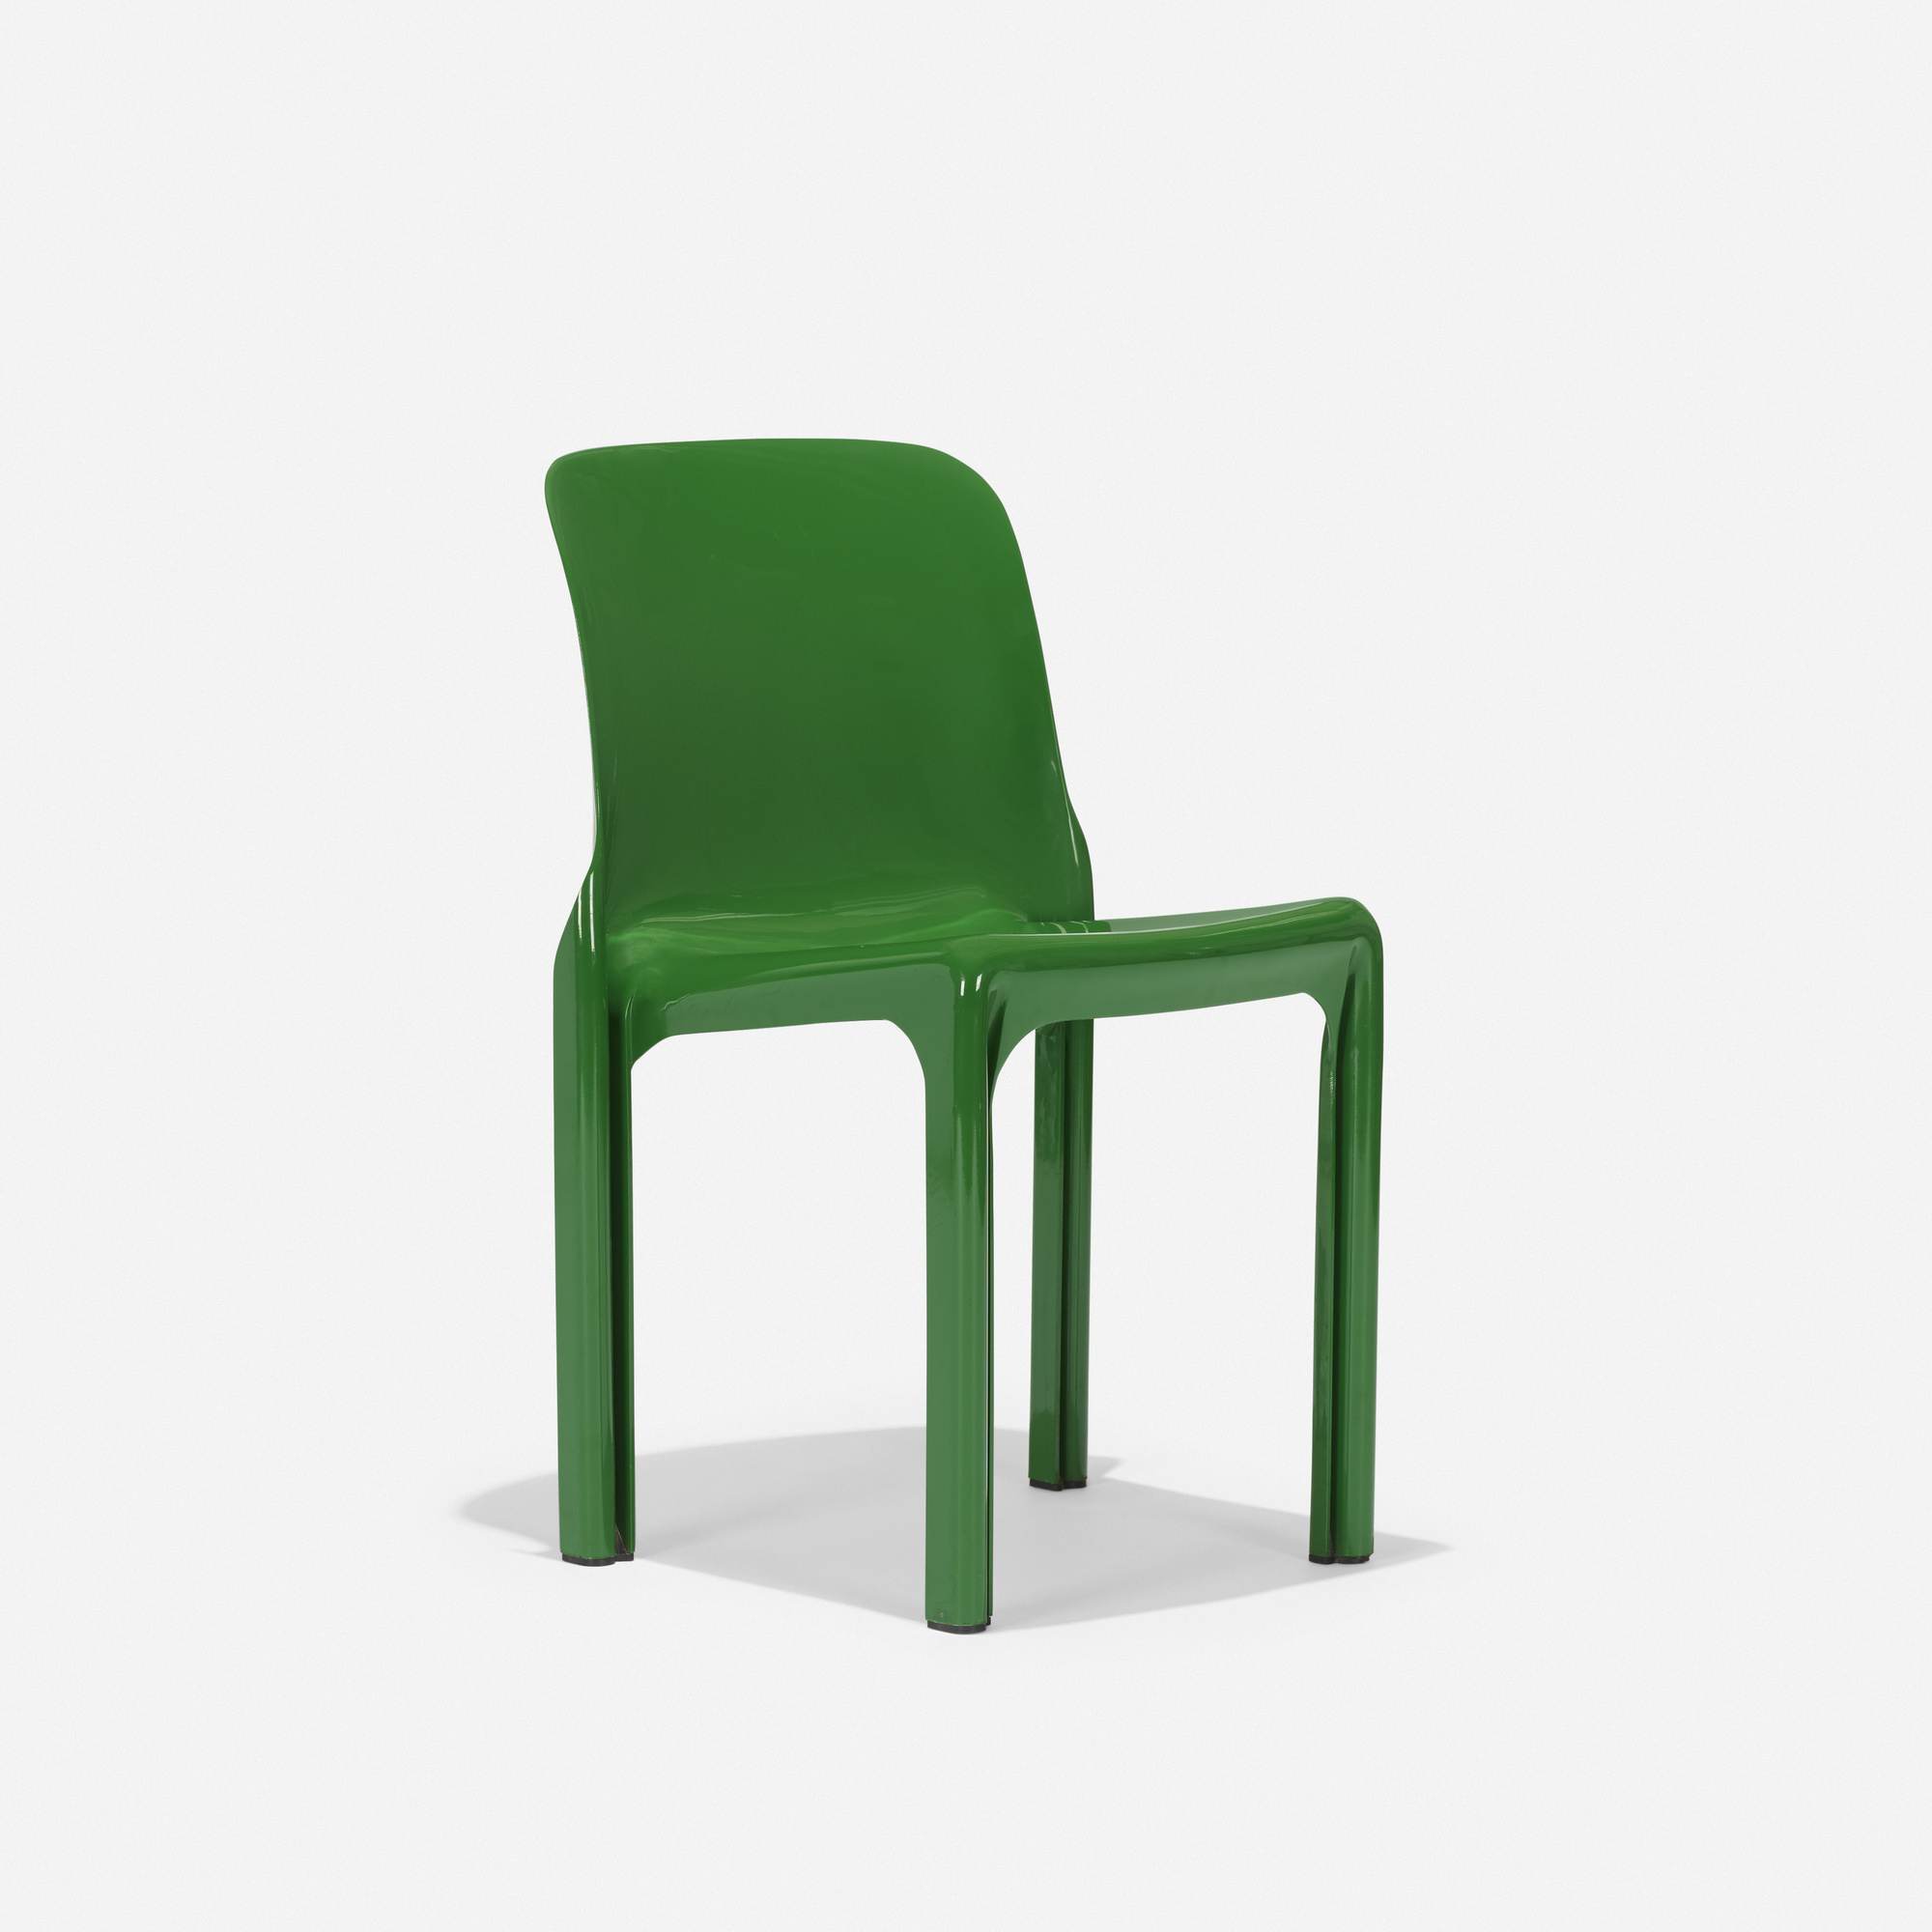 107 Vico Magistretti Selene Stacking chair Taxonomy of Design